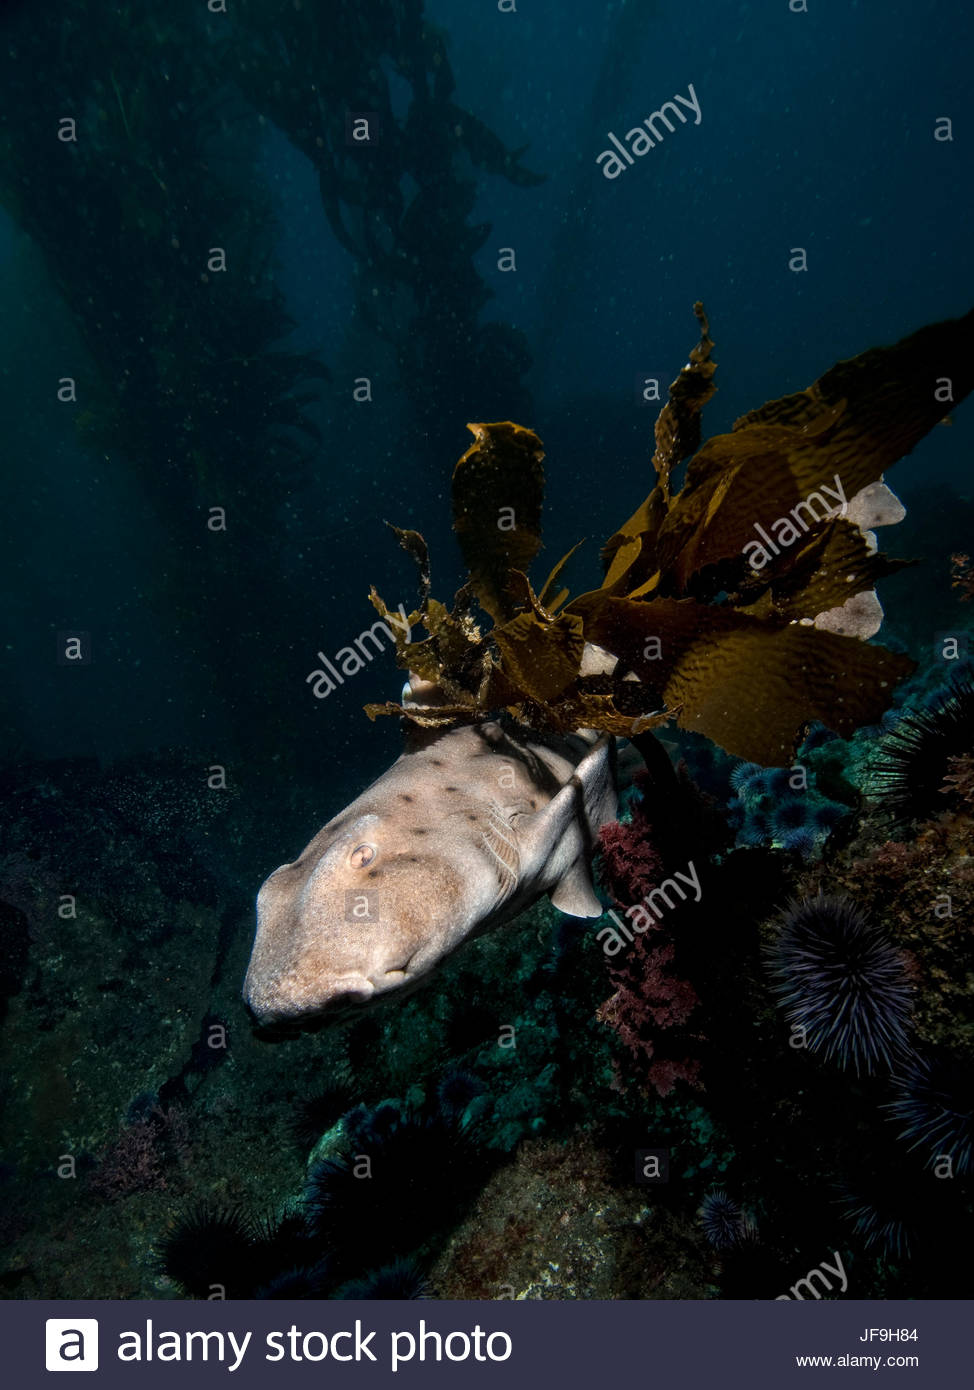 A horn shark swims through kelp in the Channel Islands off the coast of California. - Stock Image